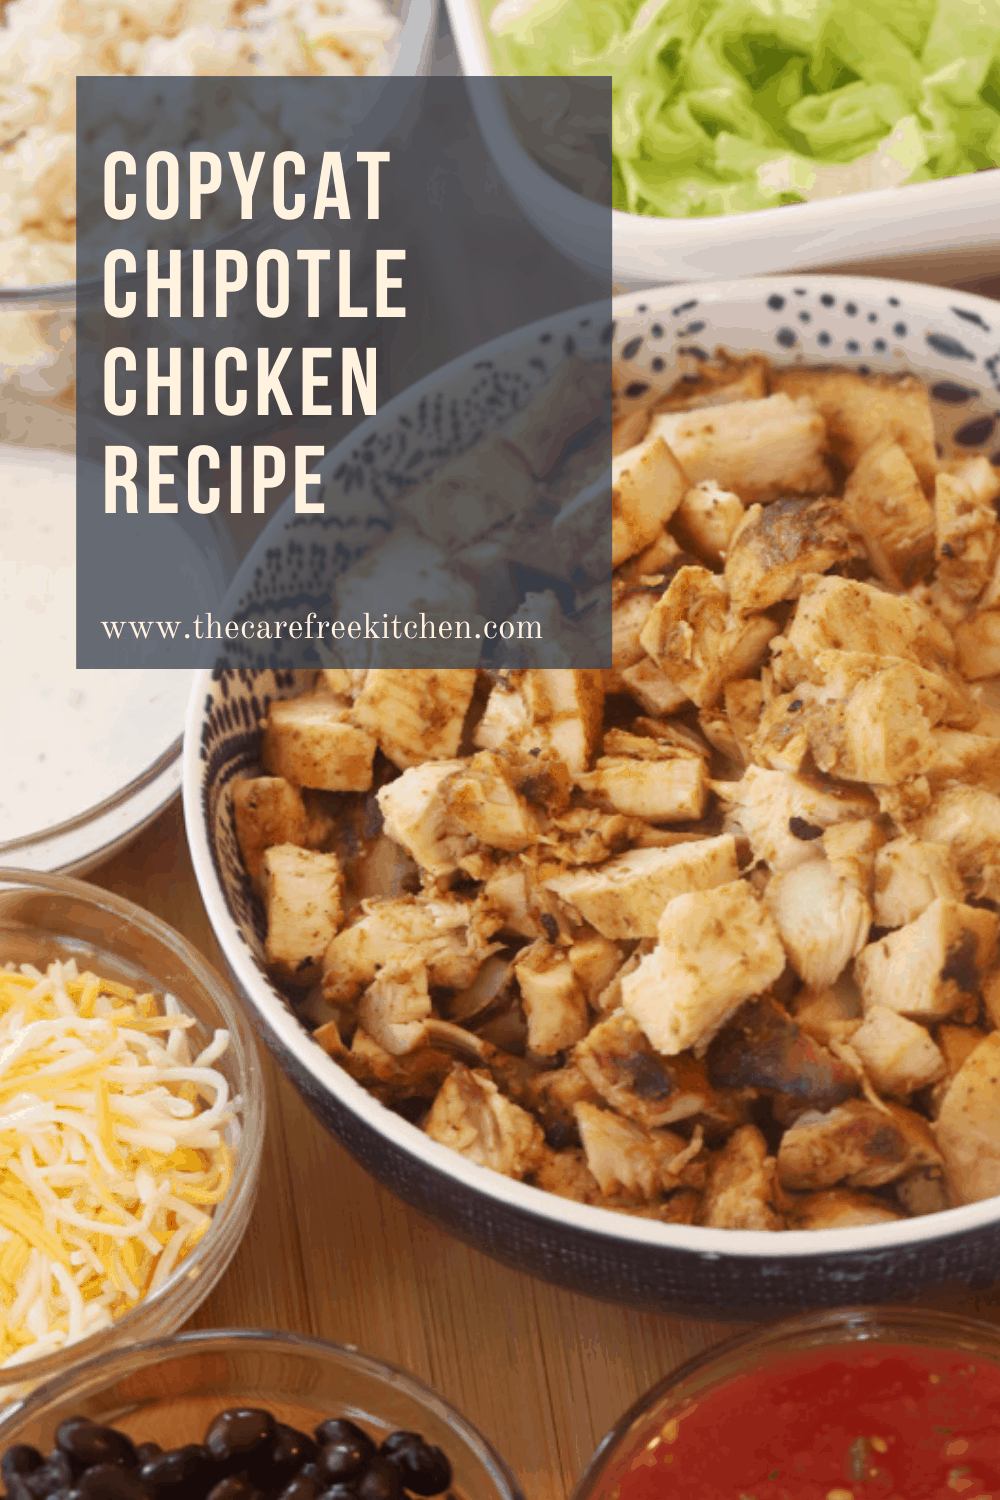 Pinterest pin for Copycat Chipotle Chicken.